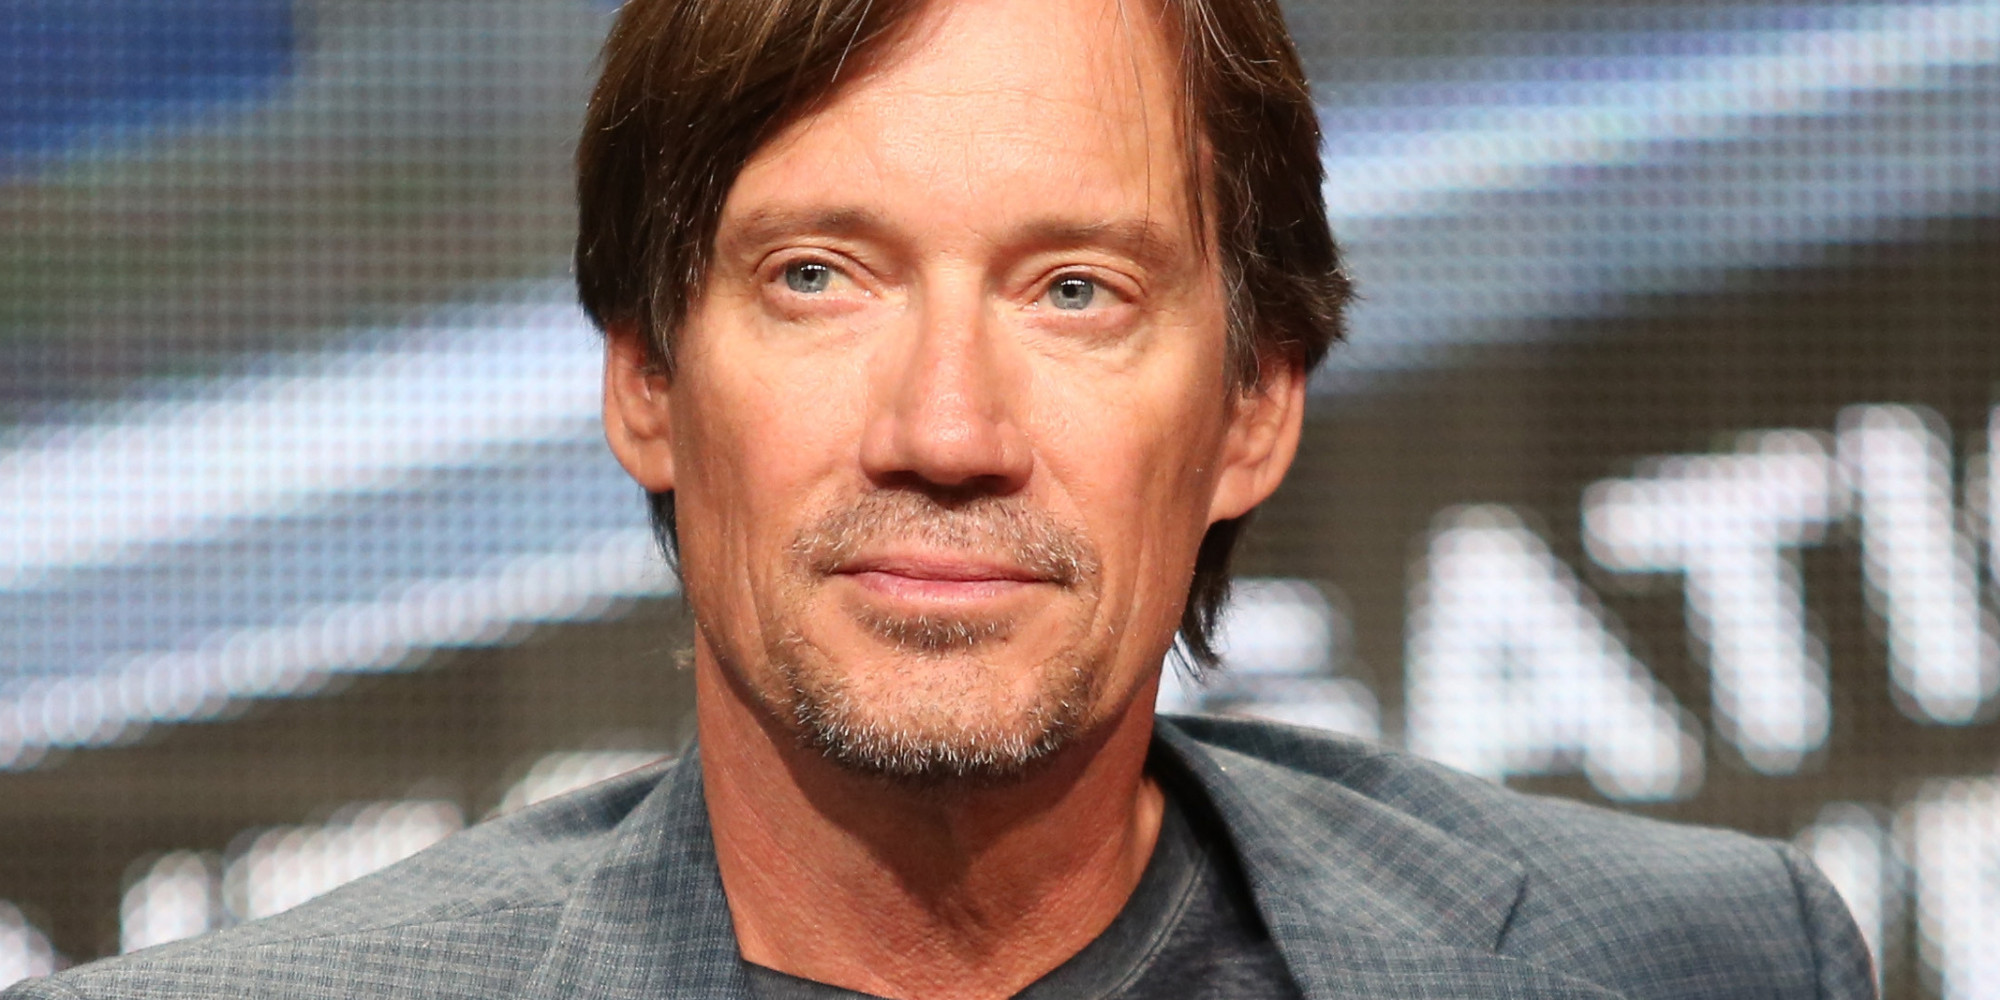 kevin sorbo wikipediakevin sorbo 2016, kevin sorbo hercules, kevin sorbo wiki, kevin sorbo wikipedia, kevin sorbo 2015, kevin sorbo net worth, kevin sorbo training, kevin sorbo movies, kevin sorbo 2014, kevin sorbo facebook, kevin sorbo kull the conqueror, kevin sorbo battlestar galactica, kevin sorbo blm, kevin sorbo survivor, kevin sorbo 300, kevin sorbo disappointed, kevin sorbo instagram, kevin sorbo height, kevin sorbo interview, kevin sorbo sister